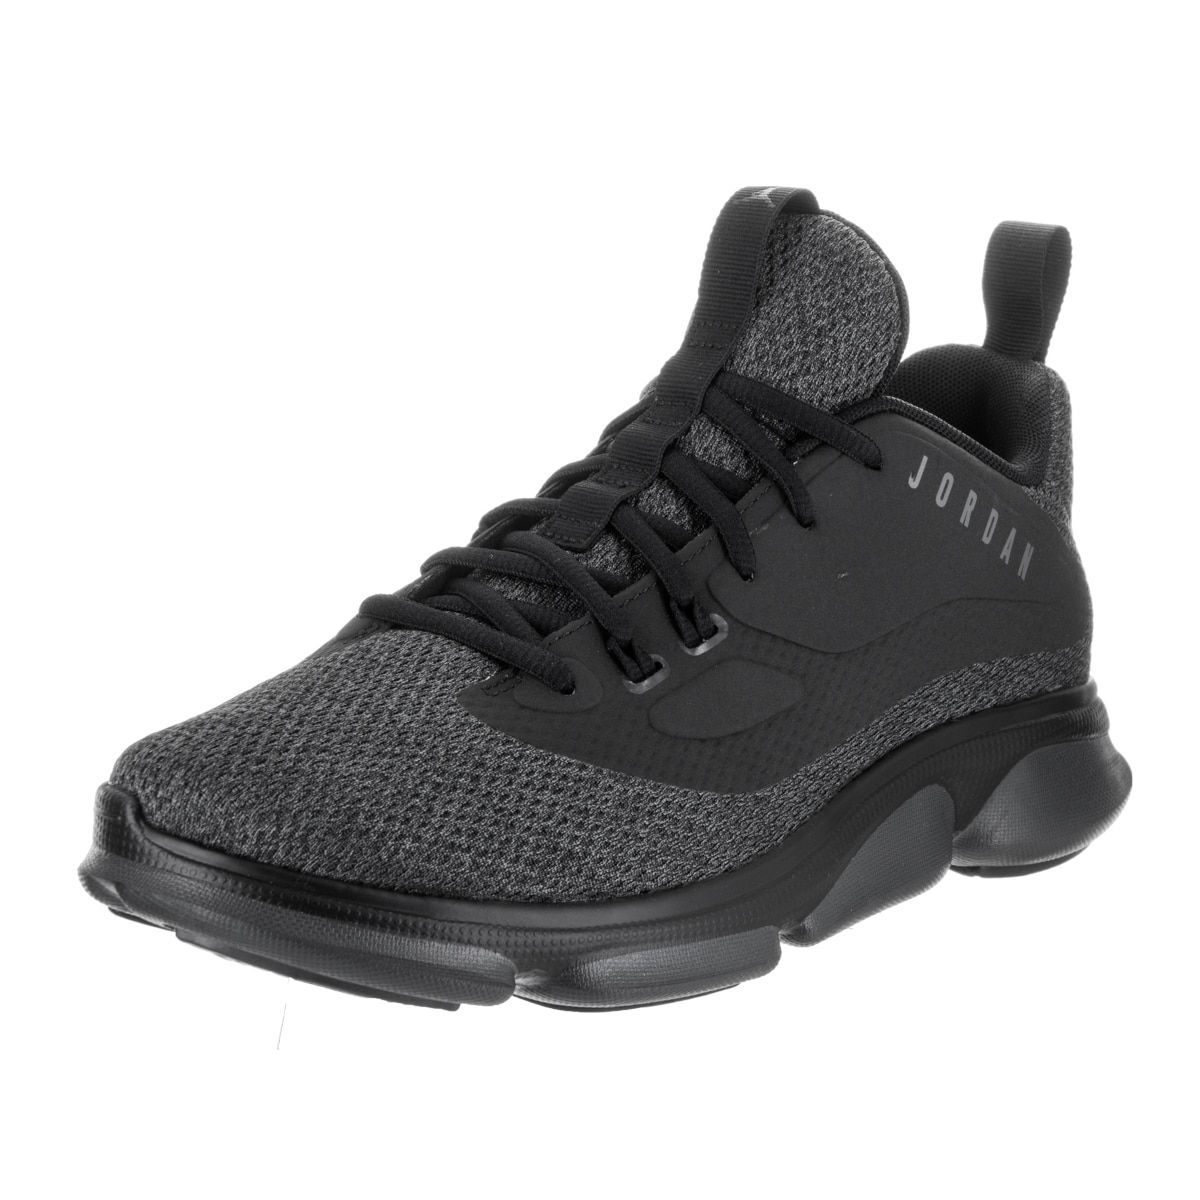 Men's Athletic Shoes For Less